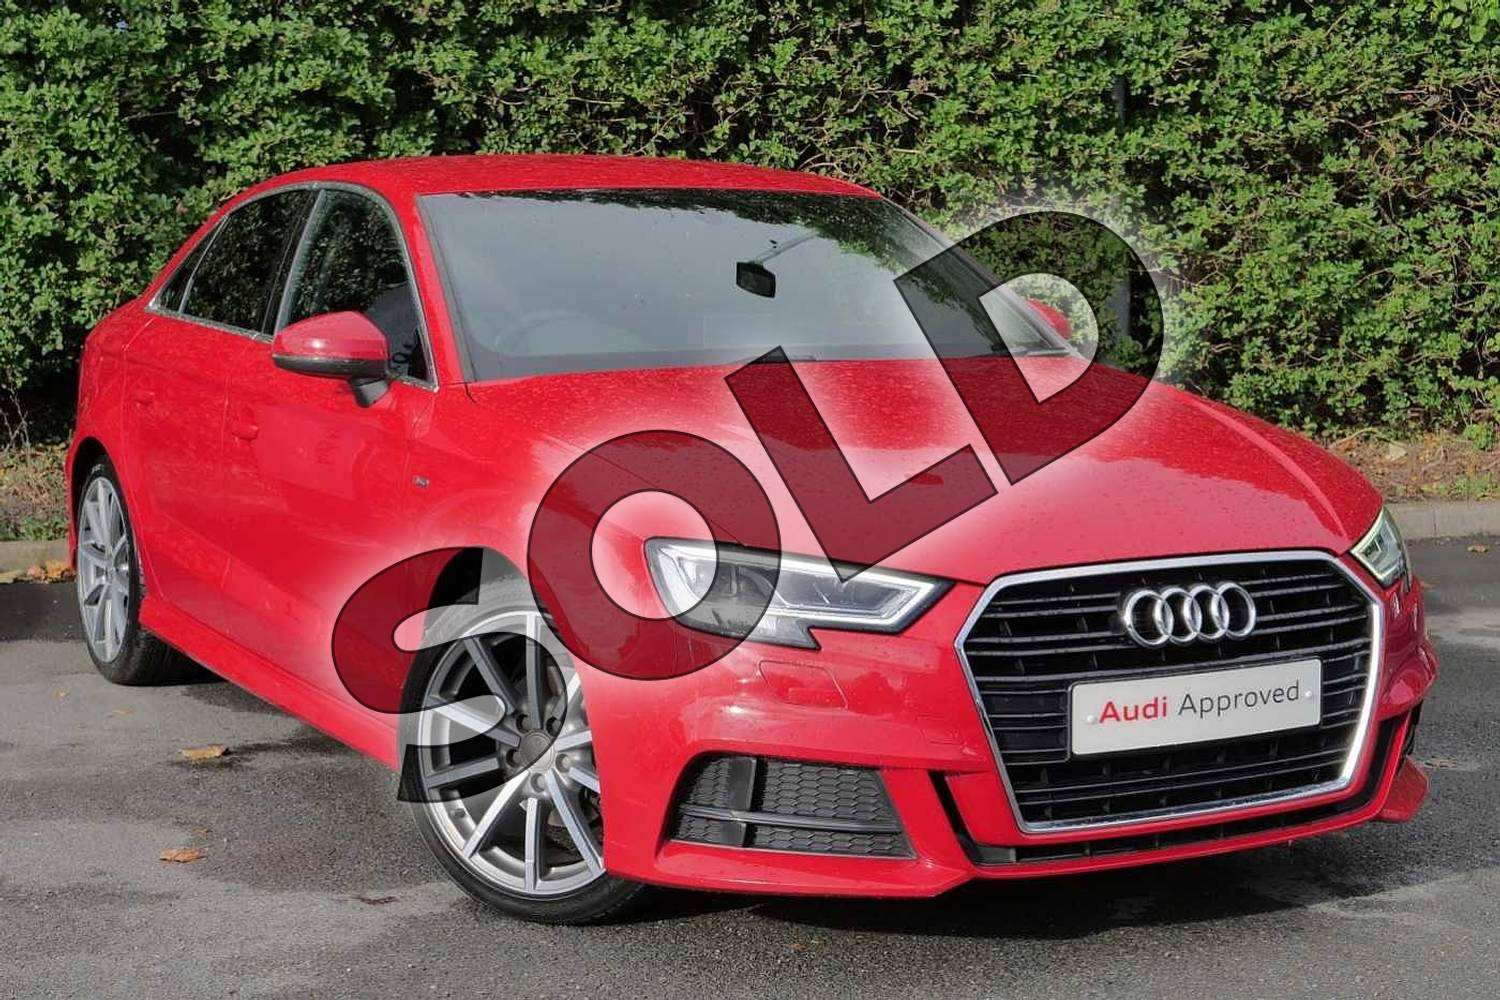 2016 Audi A3 Saloon 1.4 TFSI S Line 4dr S Tronic in Tango Red Metallic at Worcester Audi